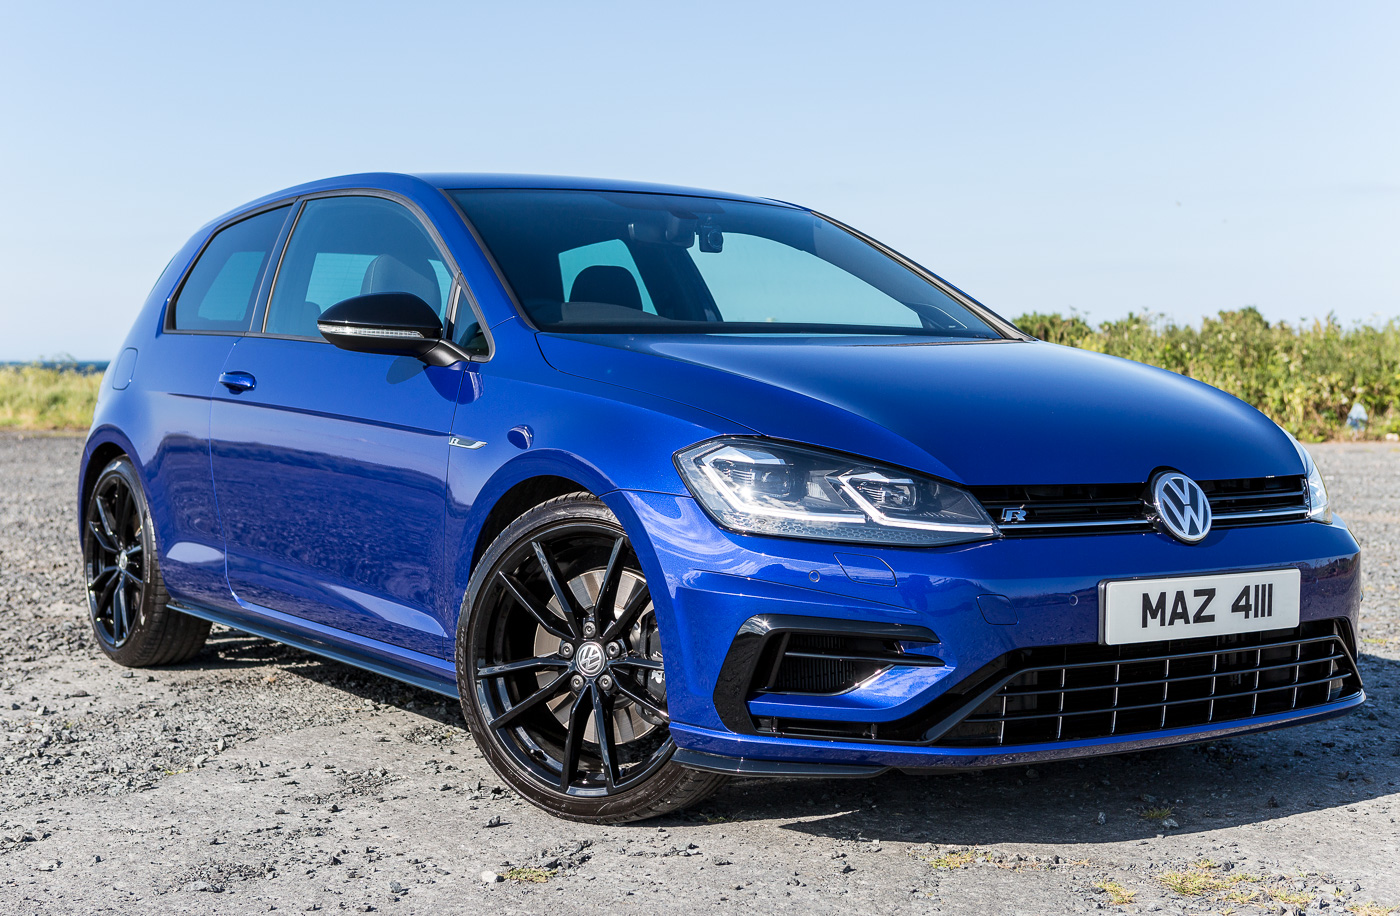 my golf r 7 5 3 door lapiz blue 7r member s rides vwroc vw r